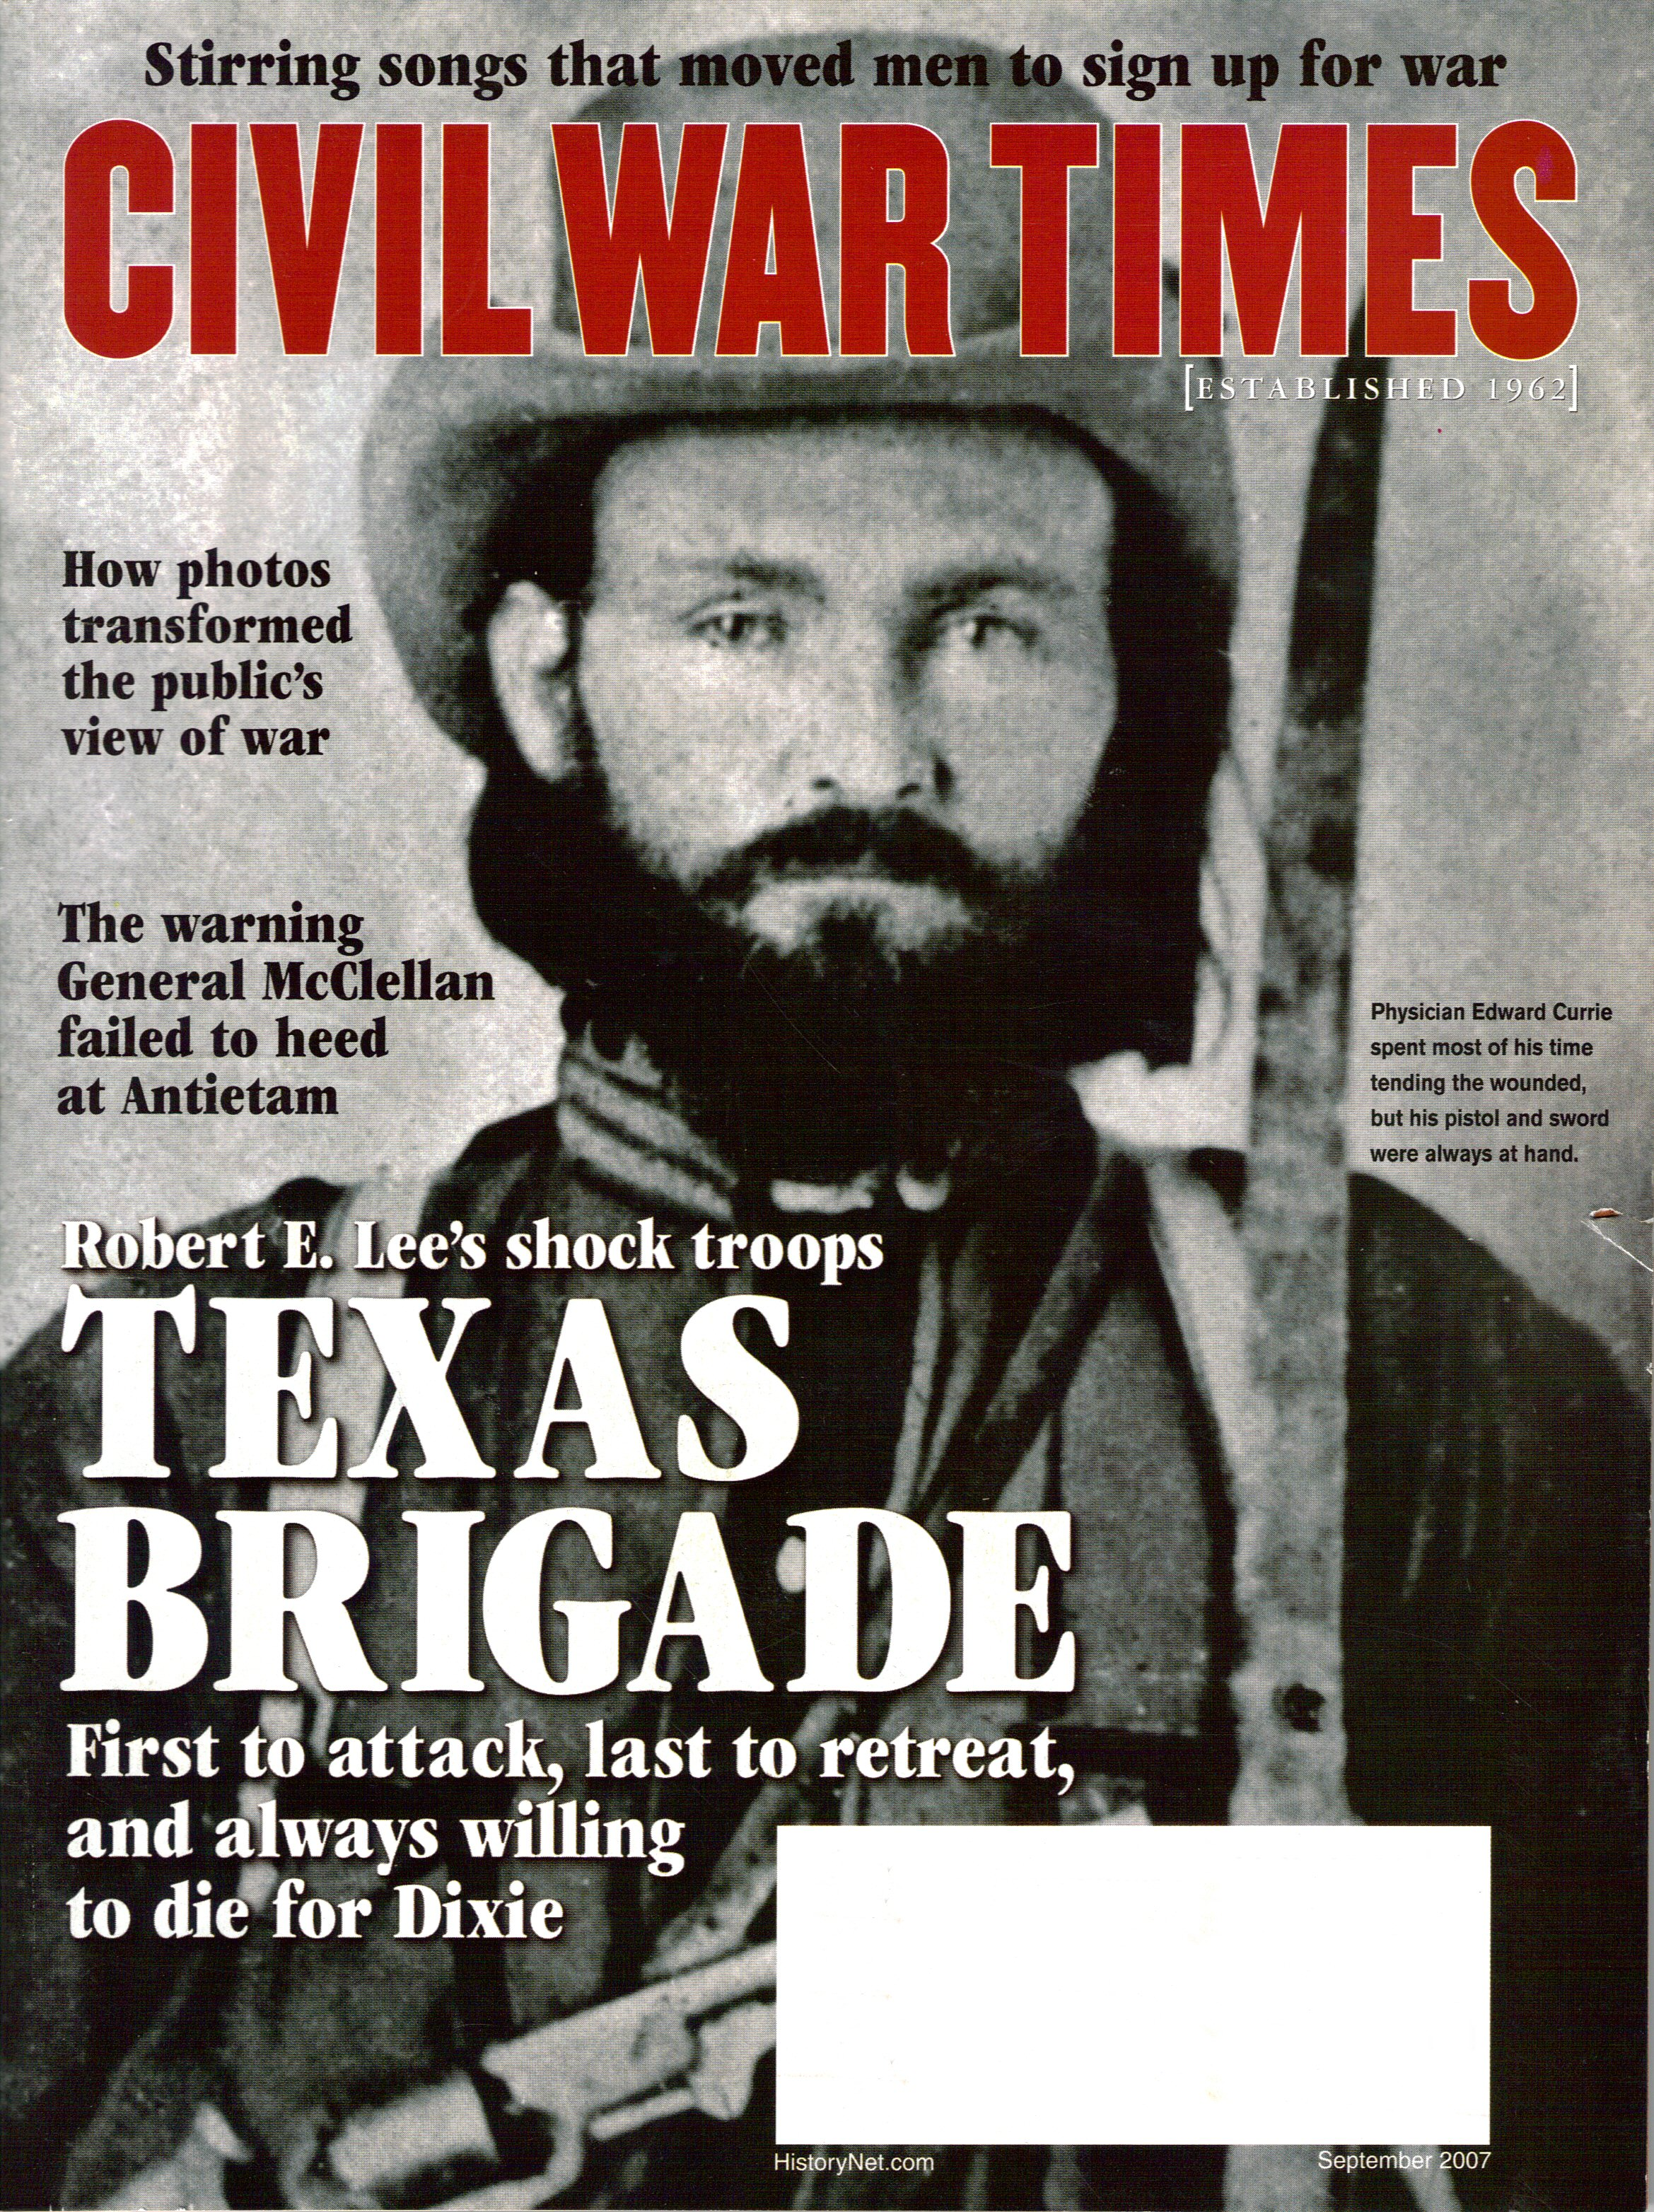 Civil War Times, Volume 46, Number 7 (September 2007)